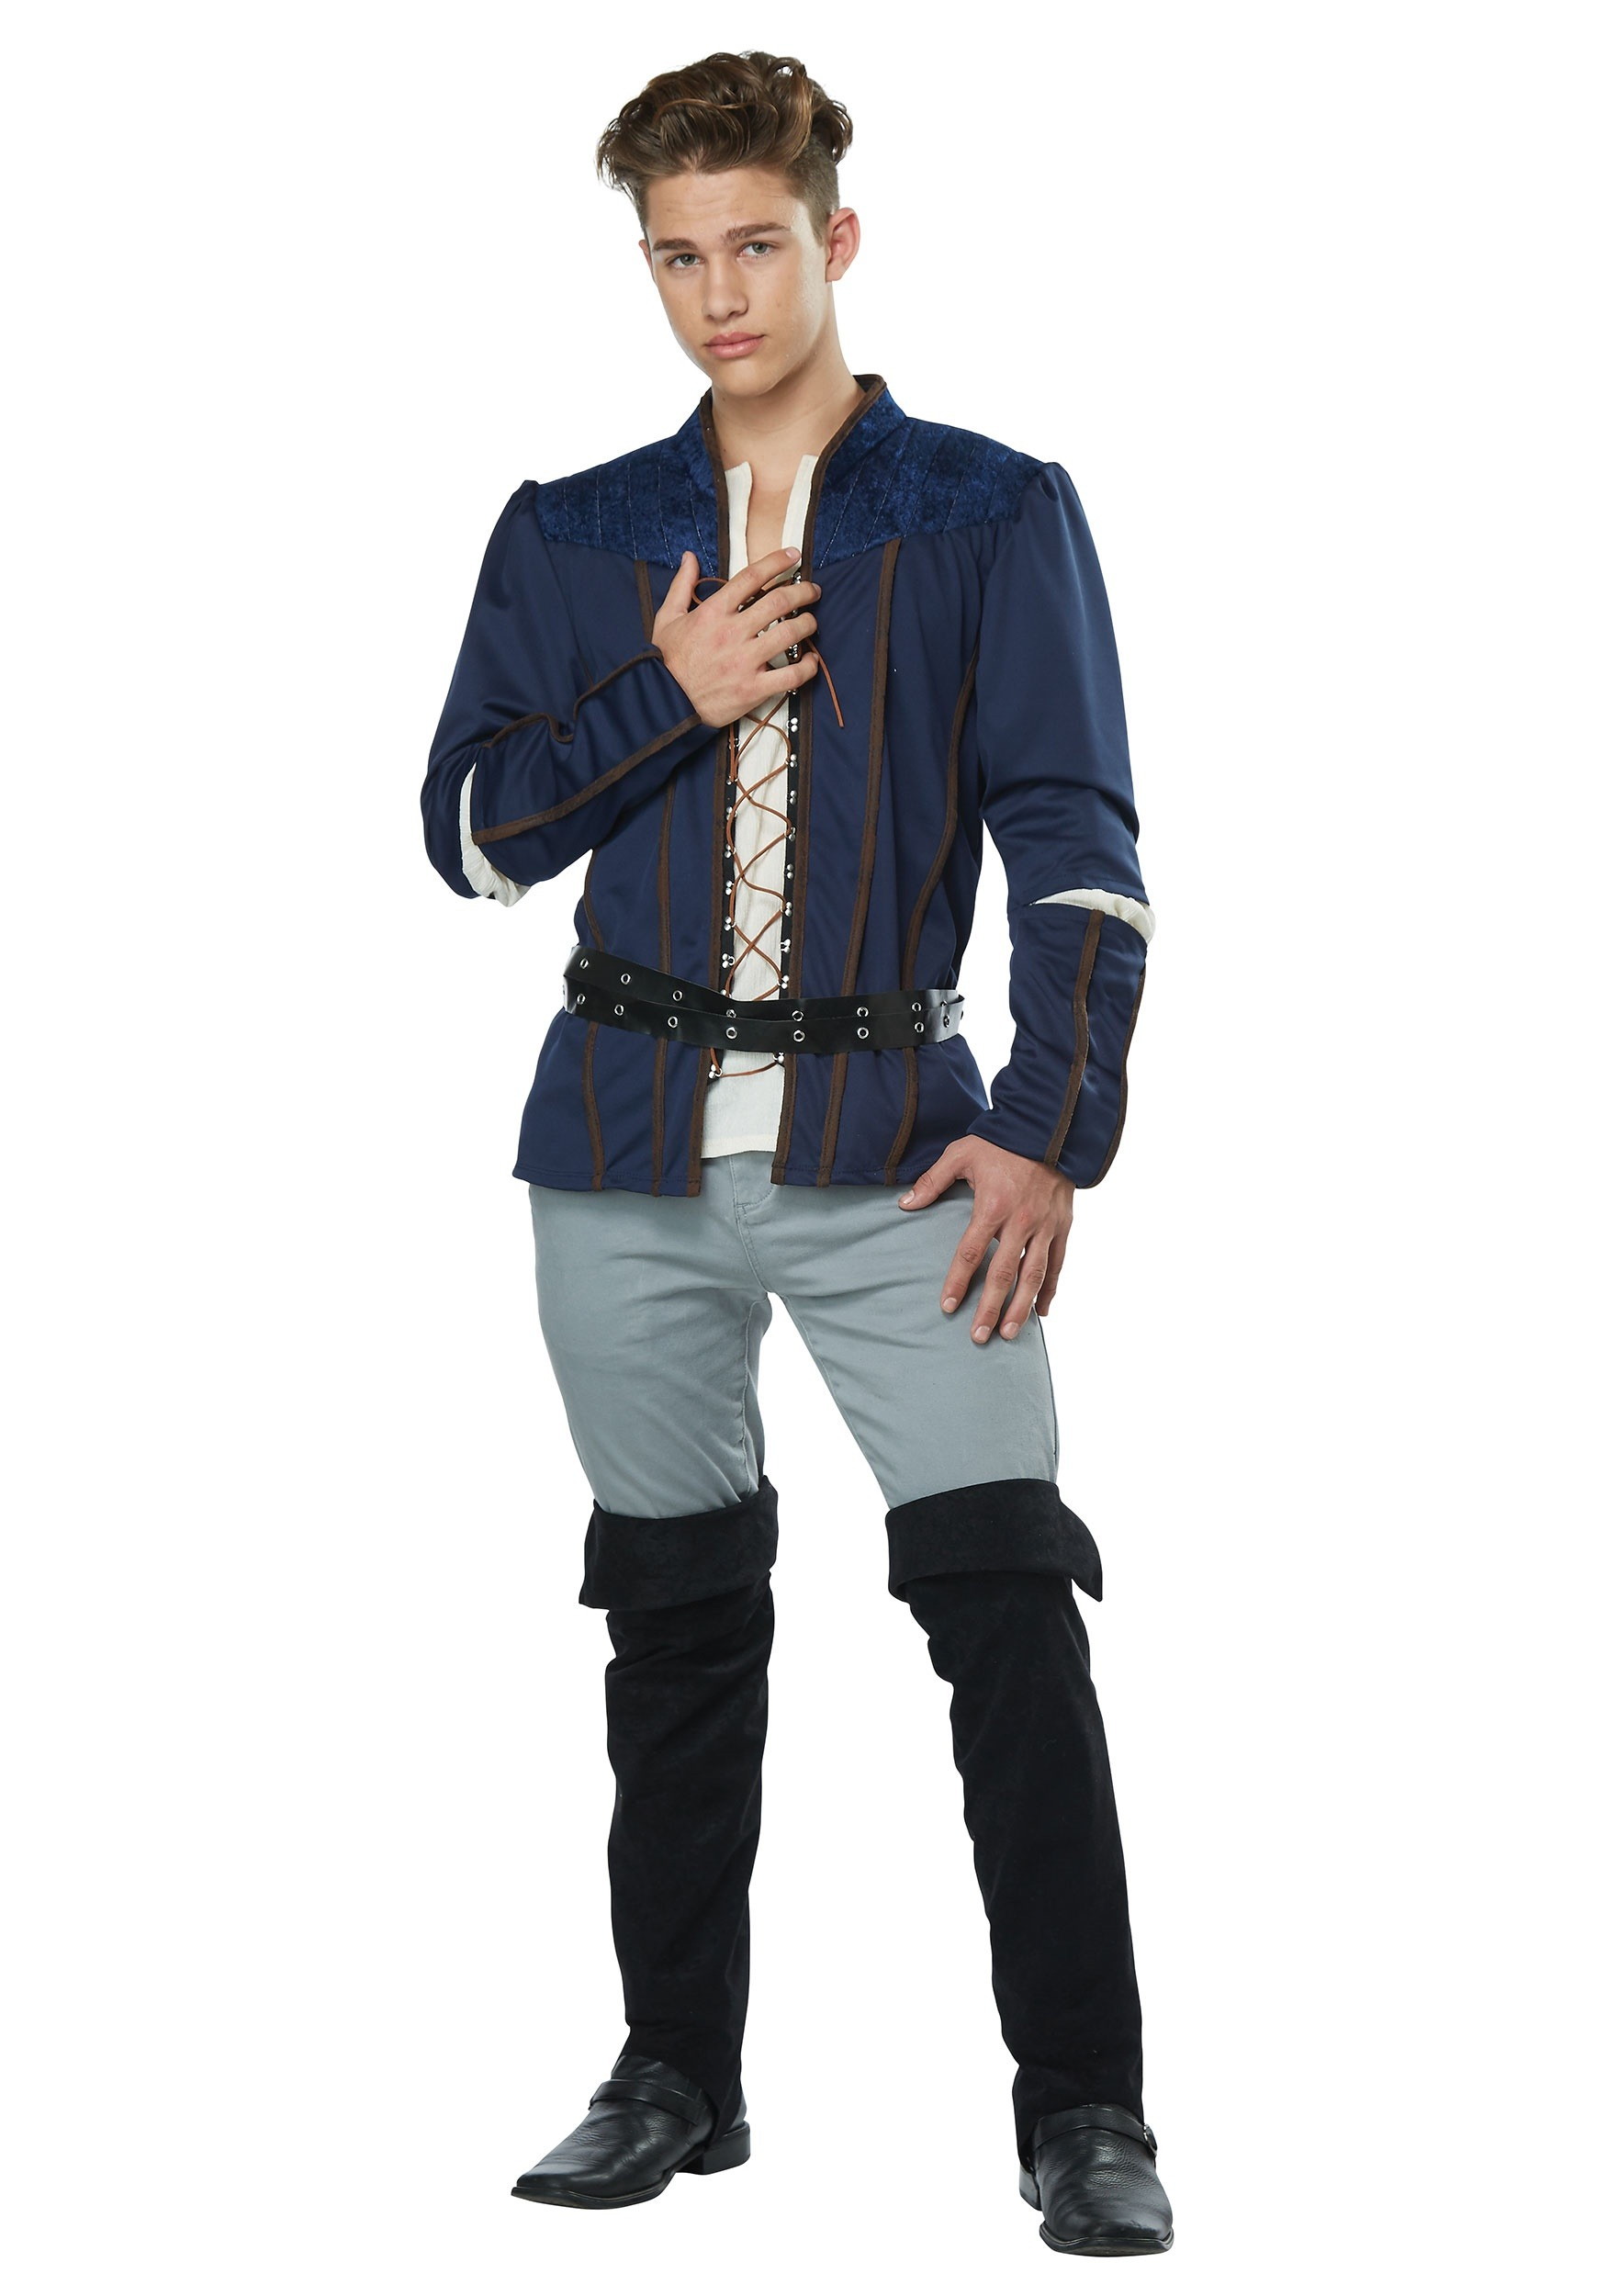 Romeo Costume for an Adult